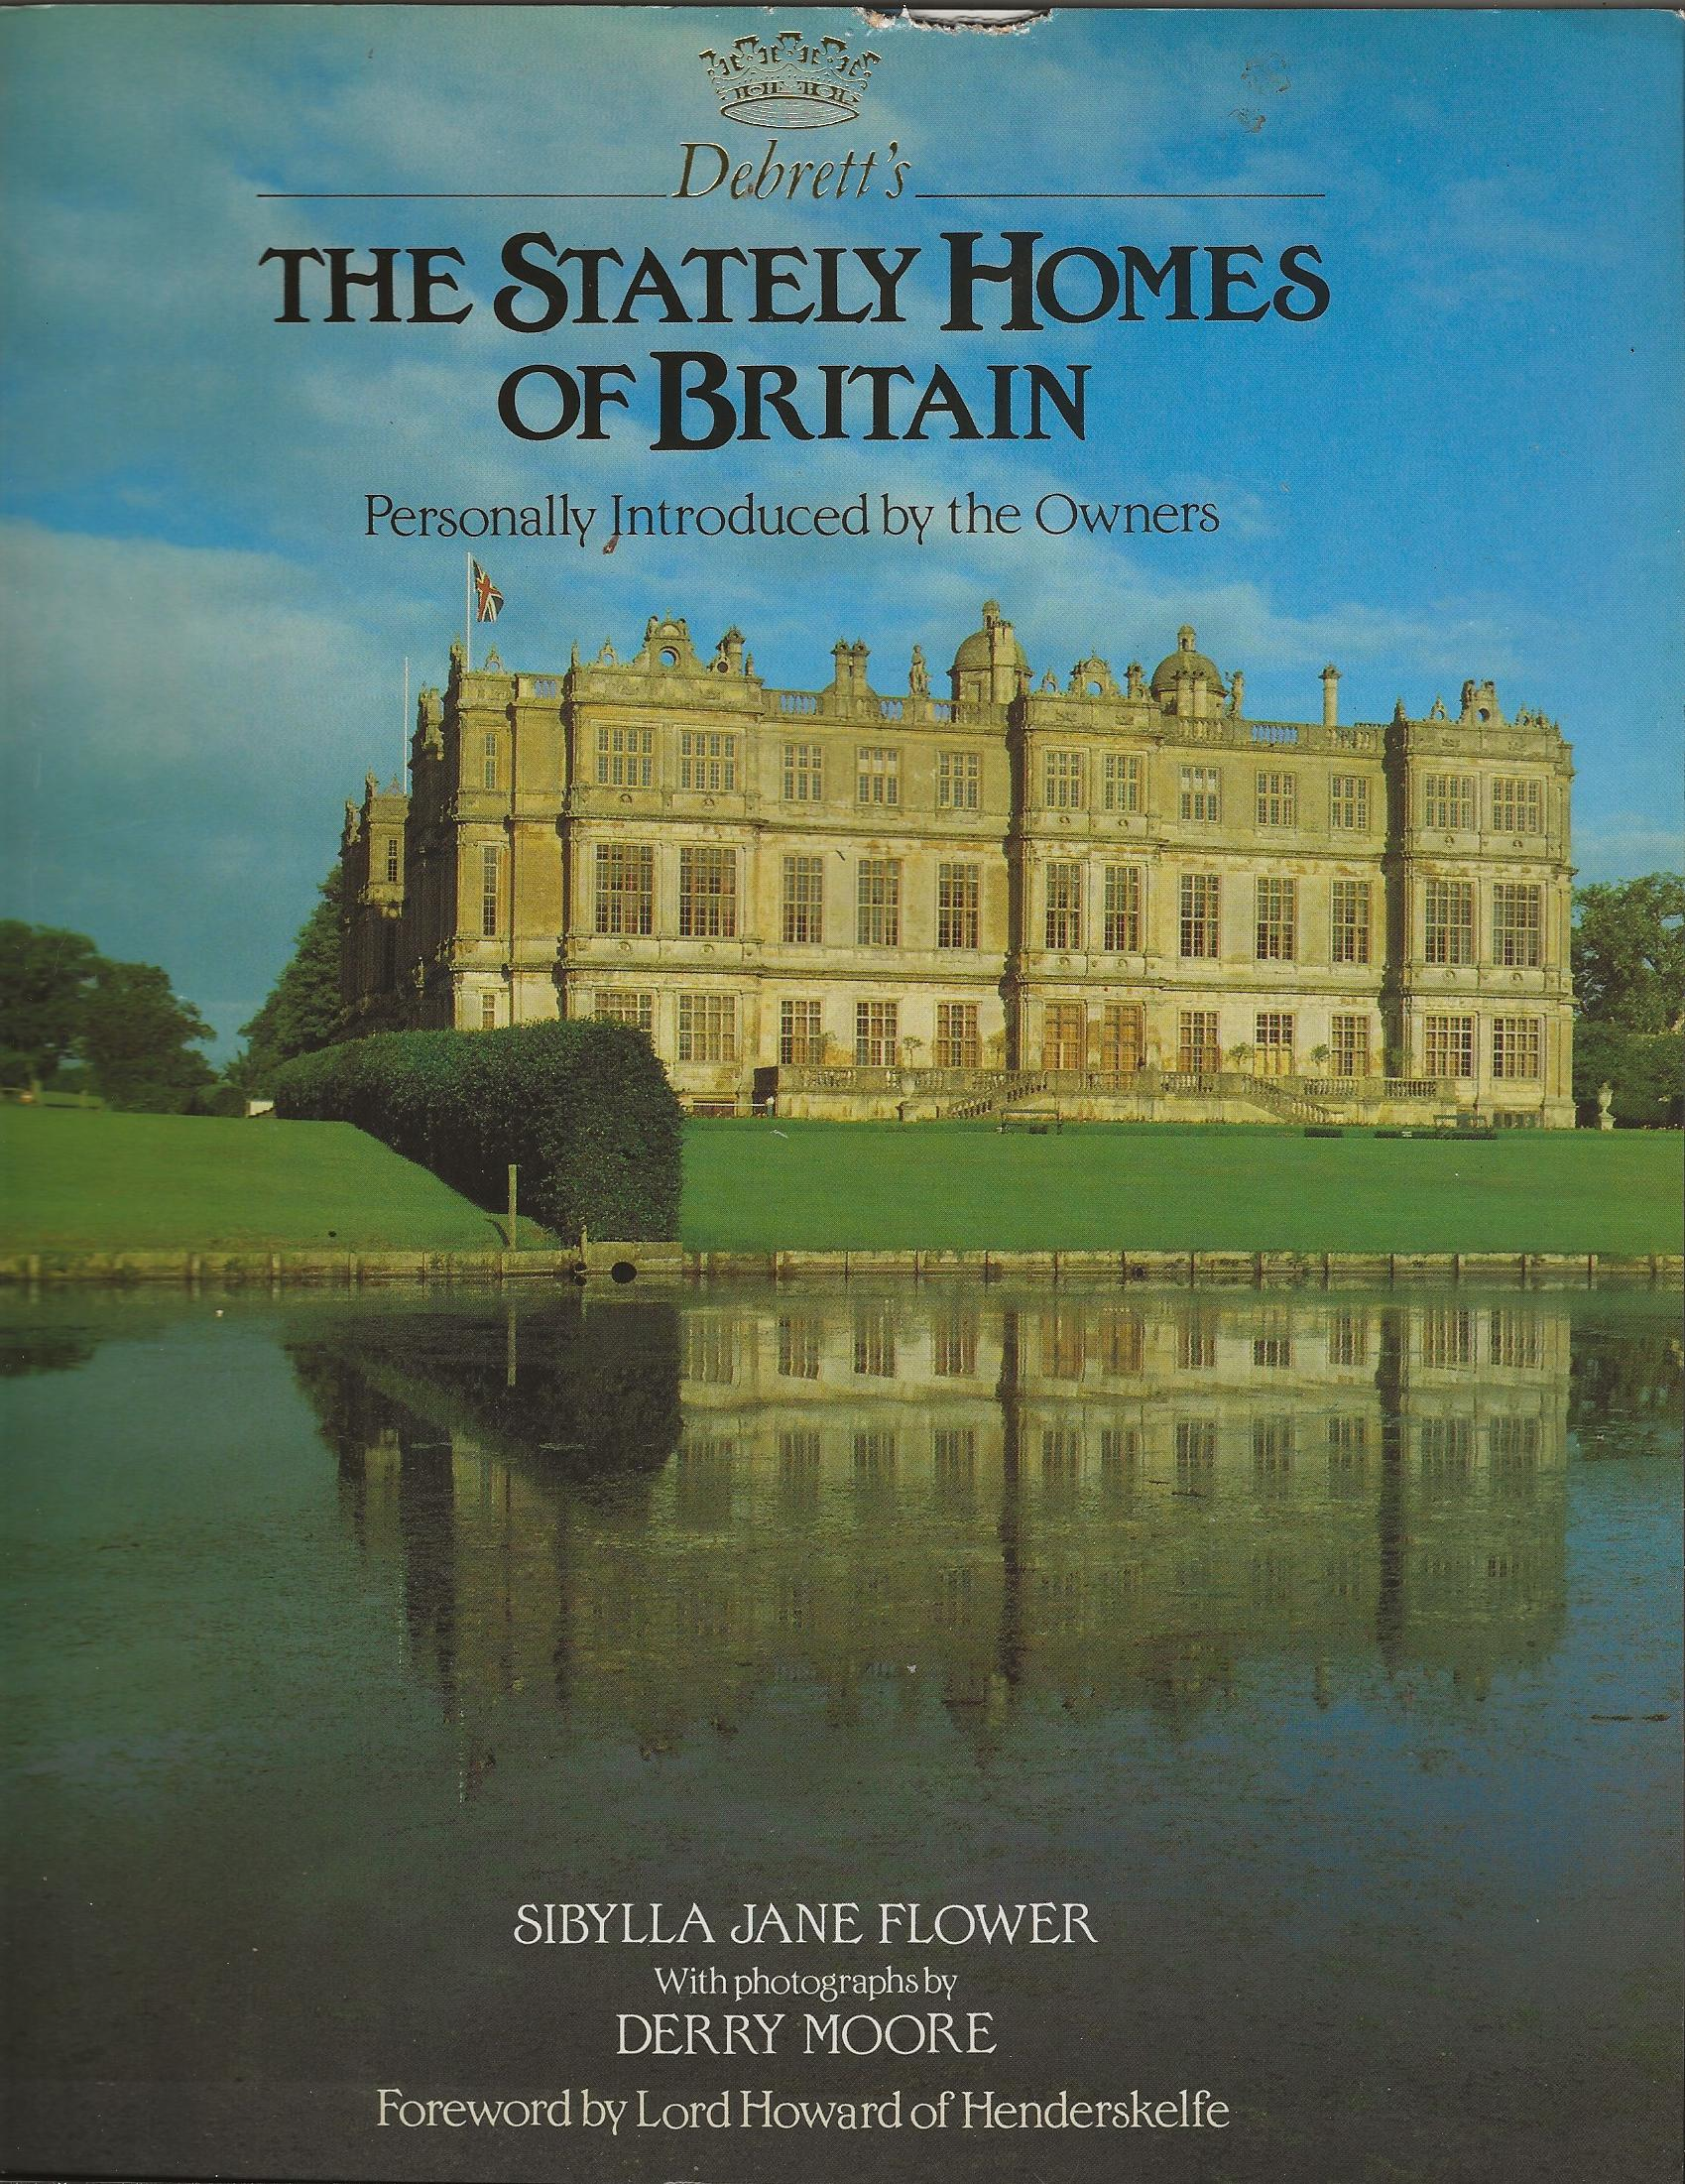 Image for DEBRETT'S THE STATELY HOMES OF BRITAIN